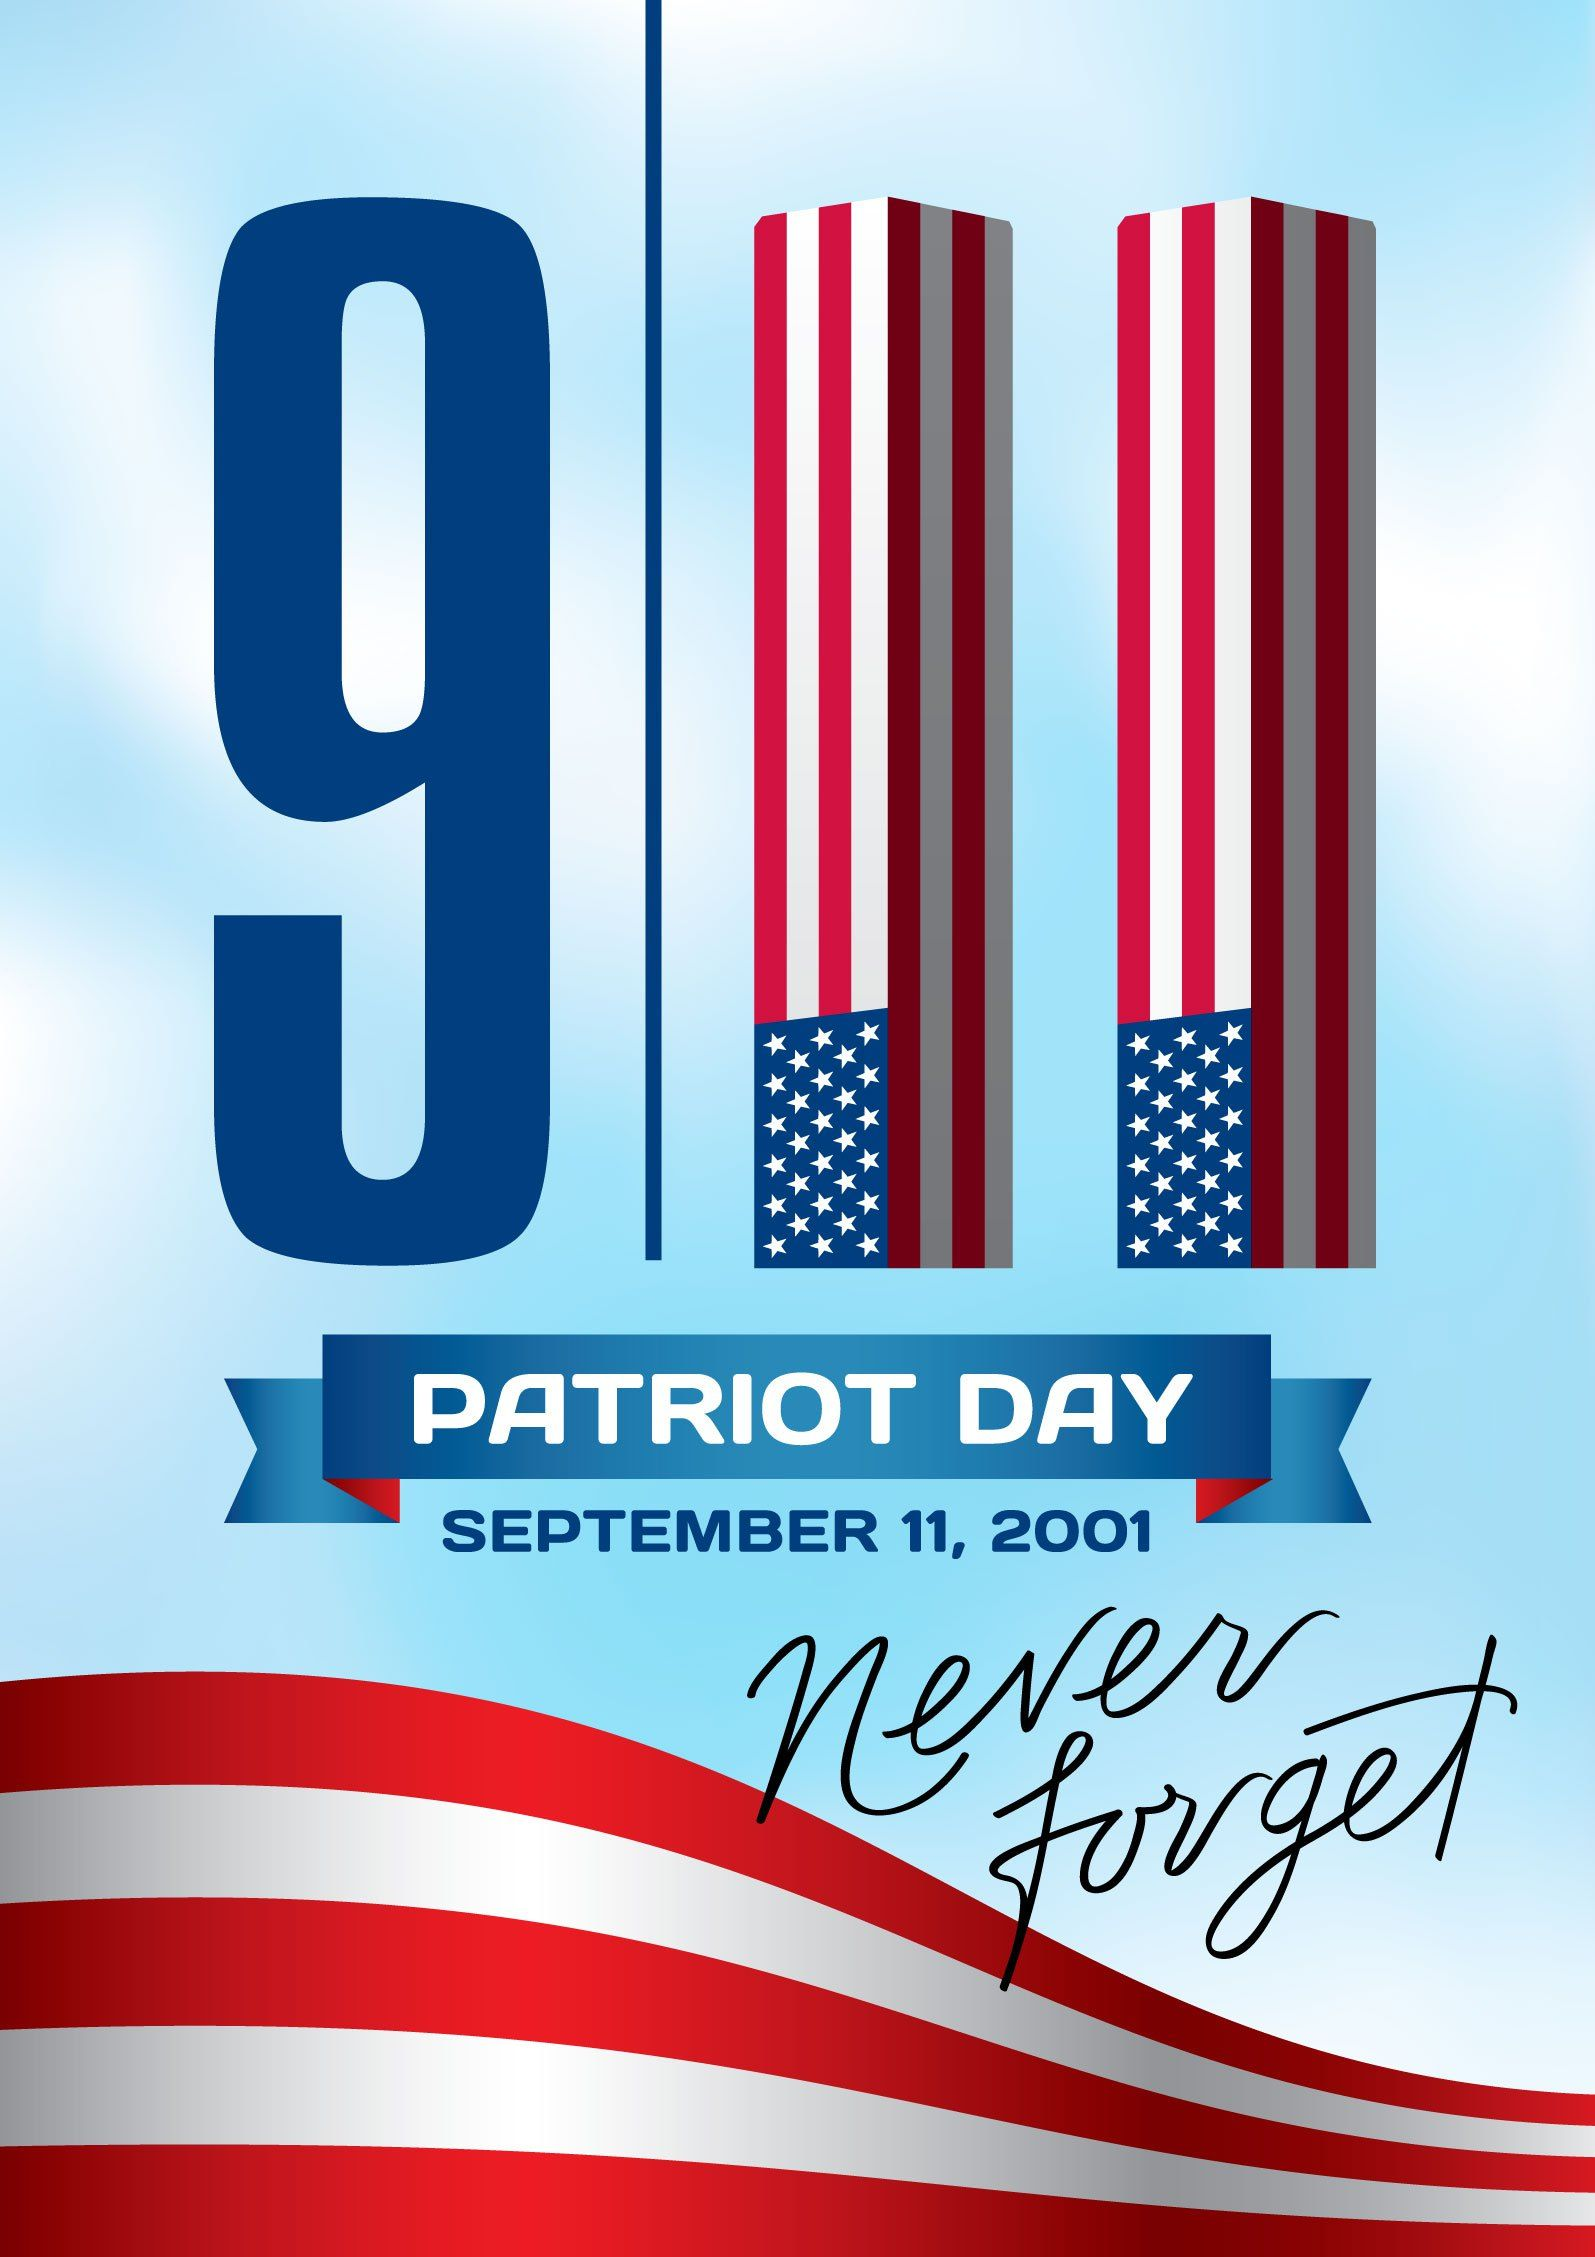 Patriot Day Honor The Victims Of Sept 11 2001 To Aug 27 2017 September 11 Quotes September 11 Patriots Day